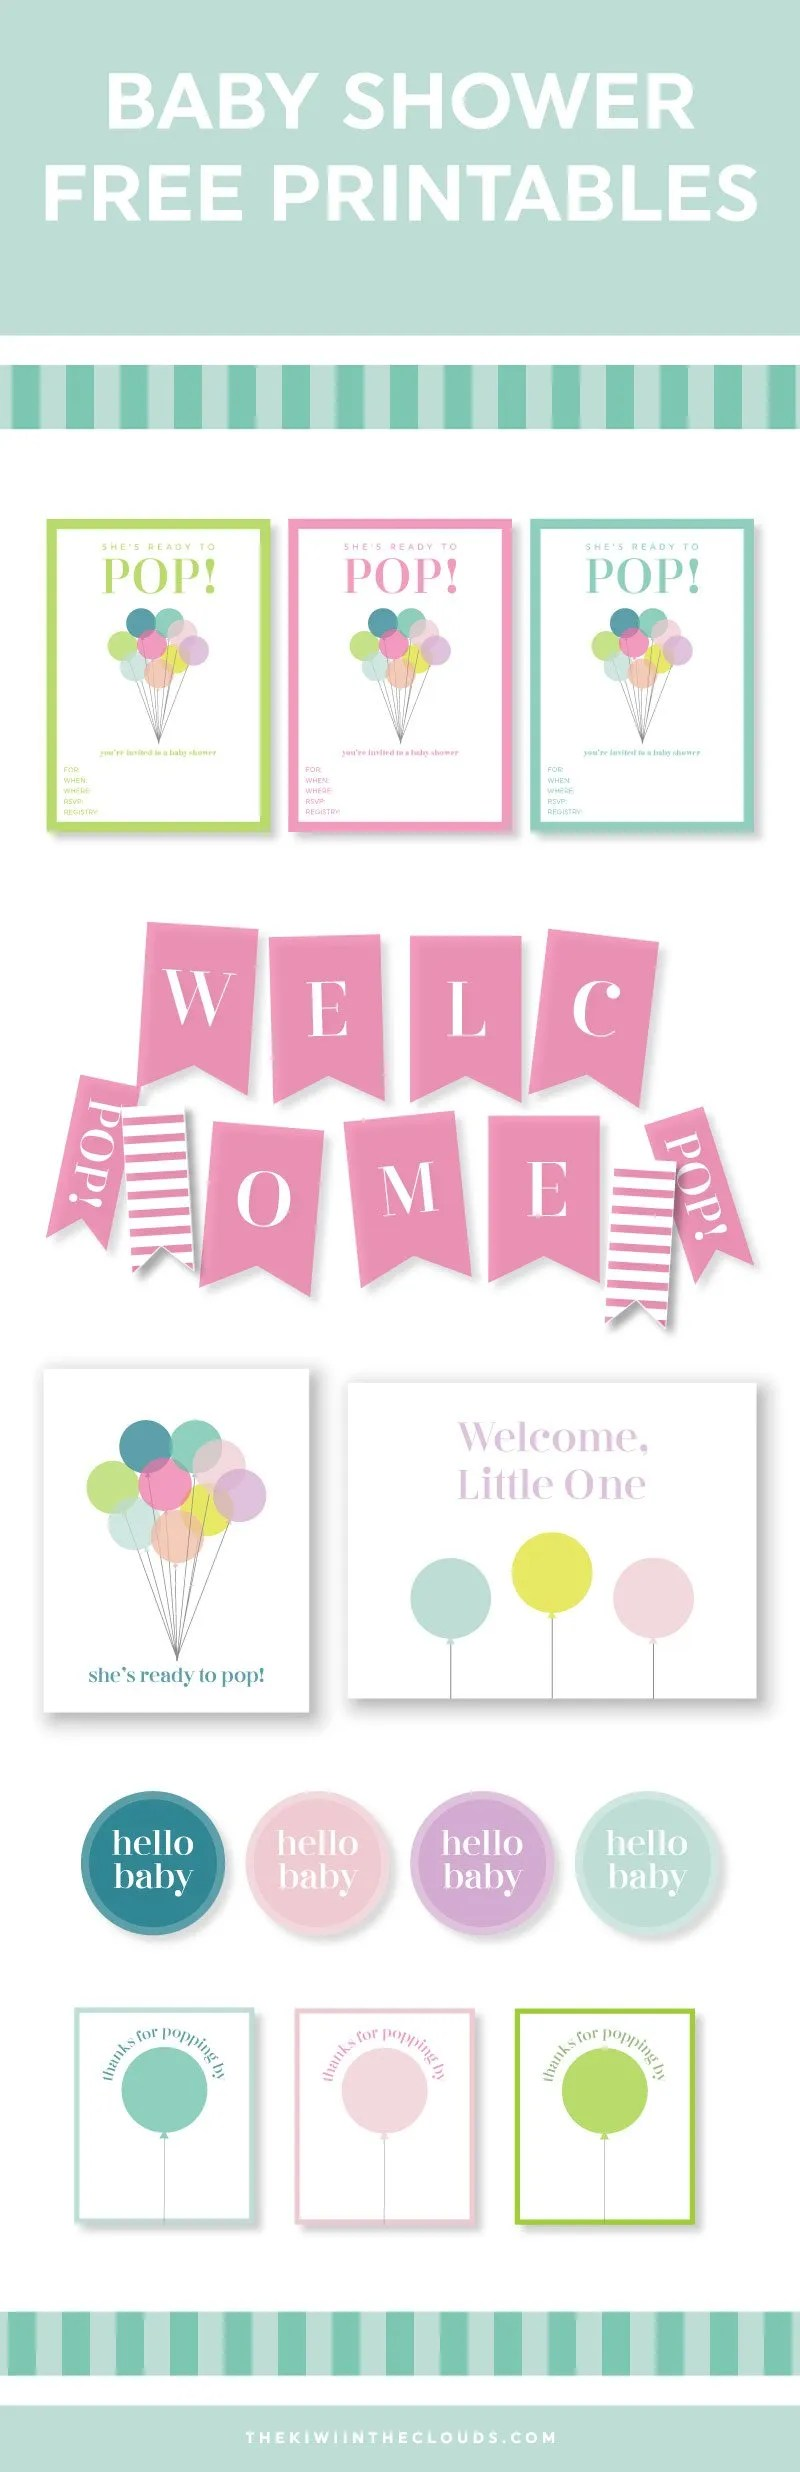 image regarding Ready to Pop Printable named 65 Cost-free Child Shower Printables for an Lovely Social gathering